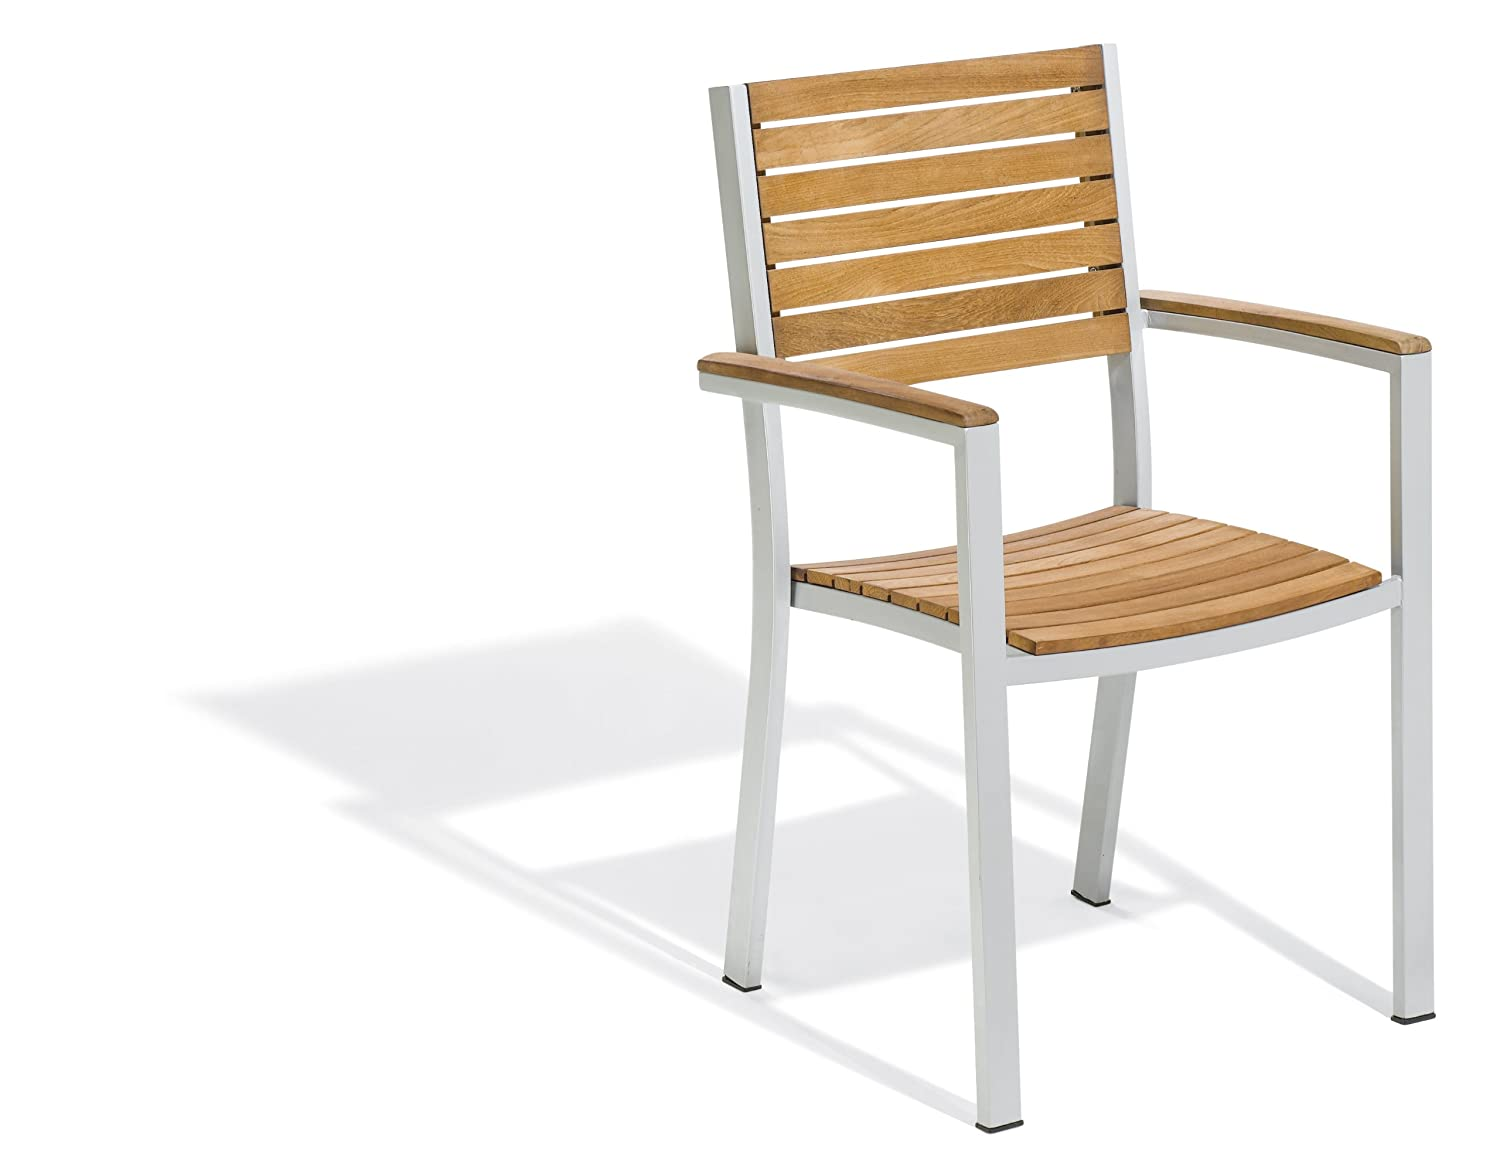 aluminum stackable patio chairs. Amazon.com : Oxford Garden Travira Aluminum And Teak Armchair, 2-Pack  Chair \u0026 Outdoor Aluminum Stackable Patio Chairs